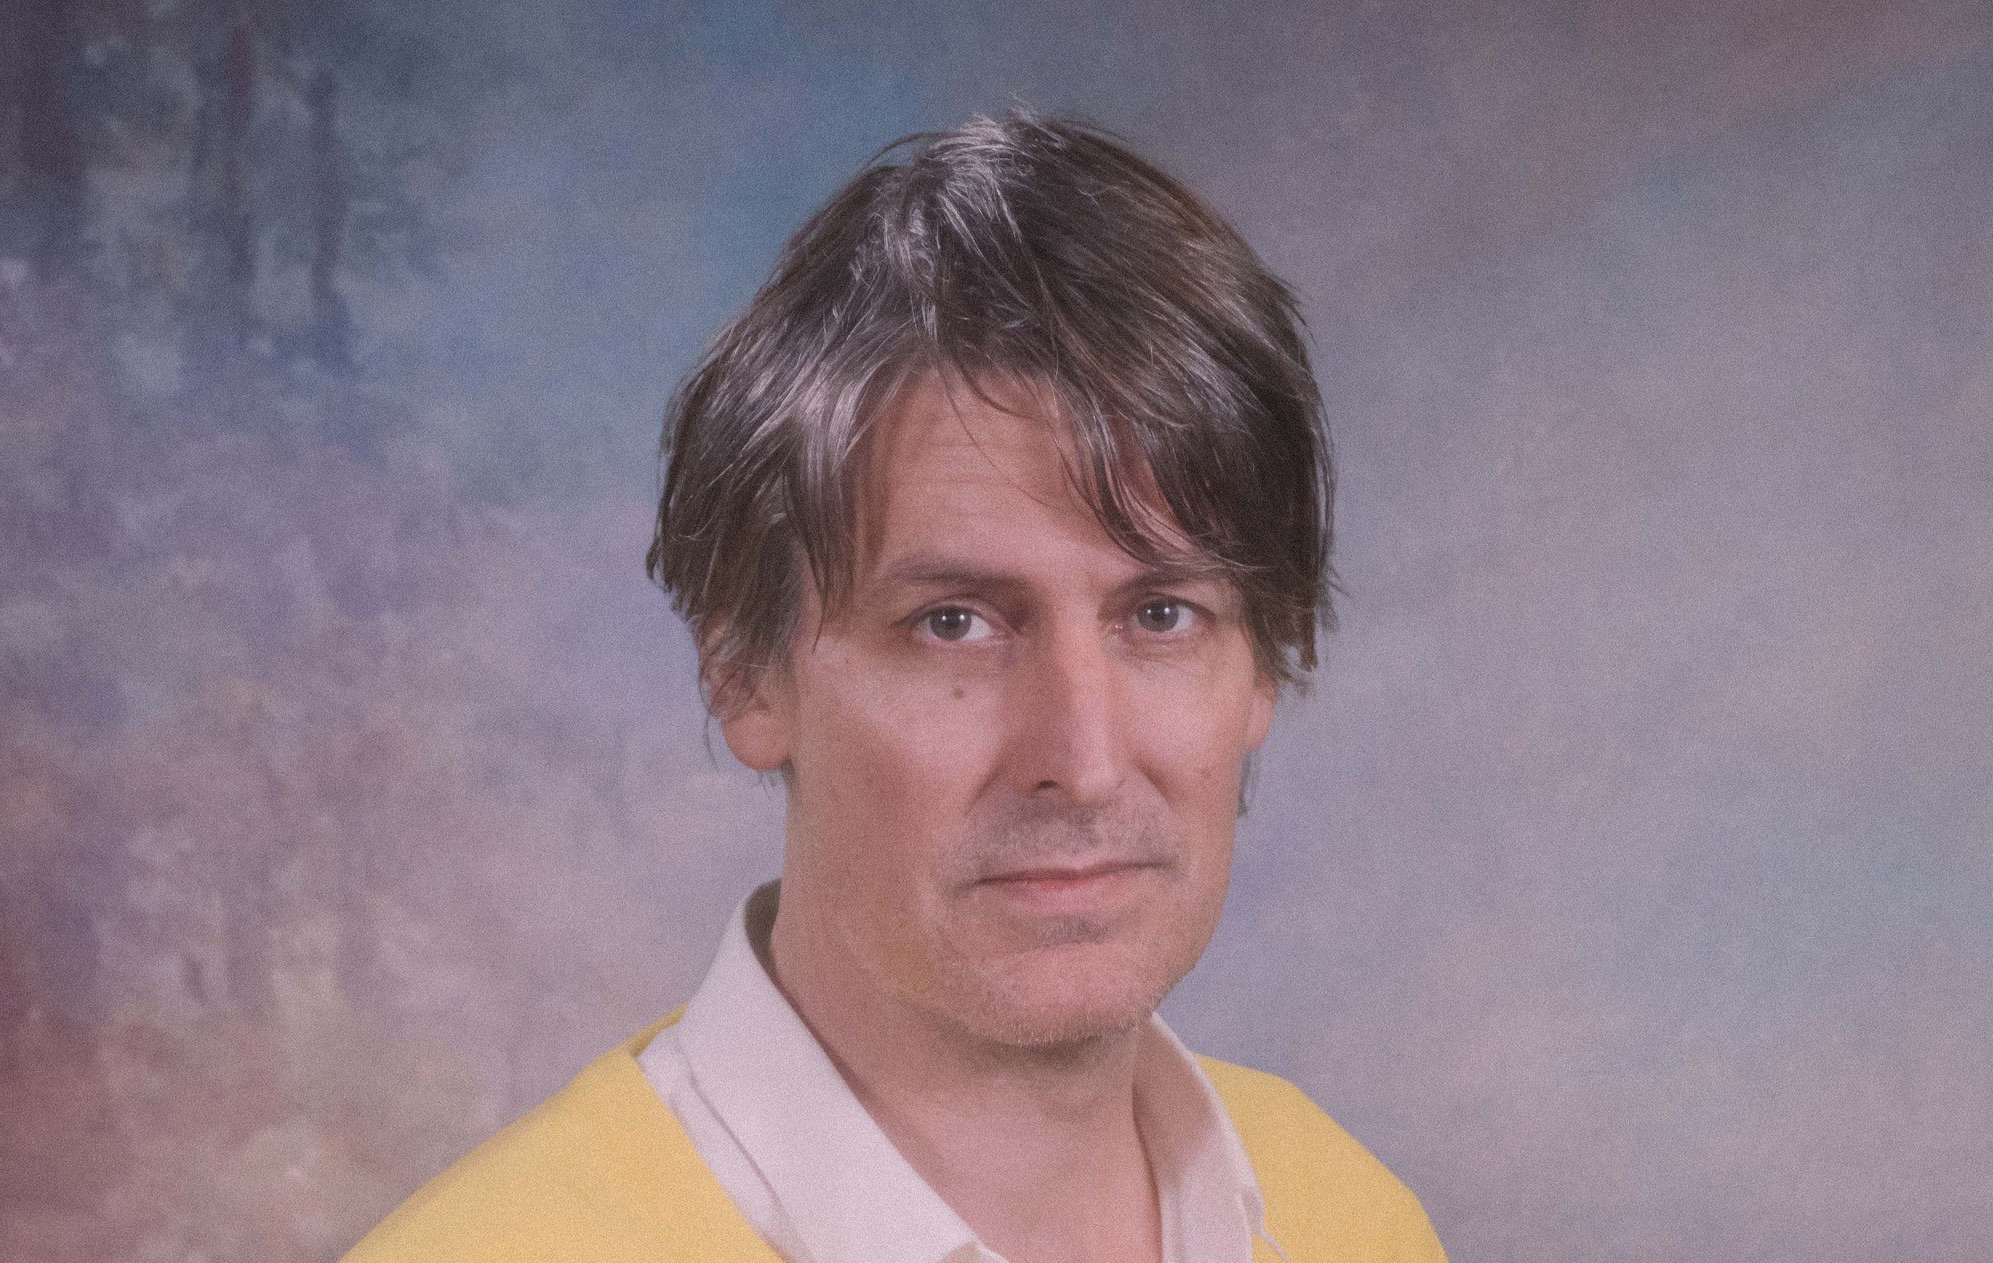 Stephen Malkmus shares new song 'Come Get Me'